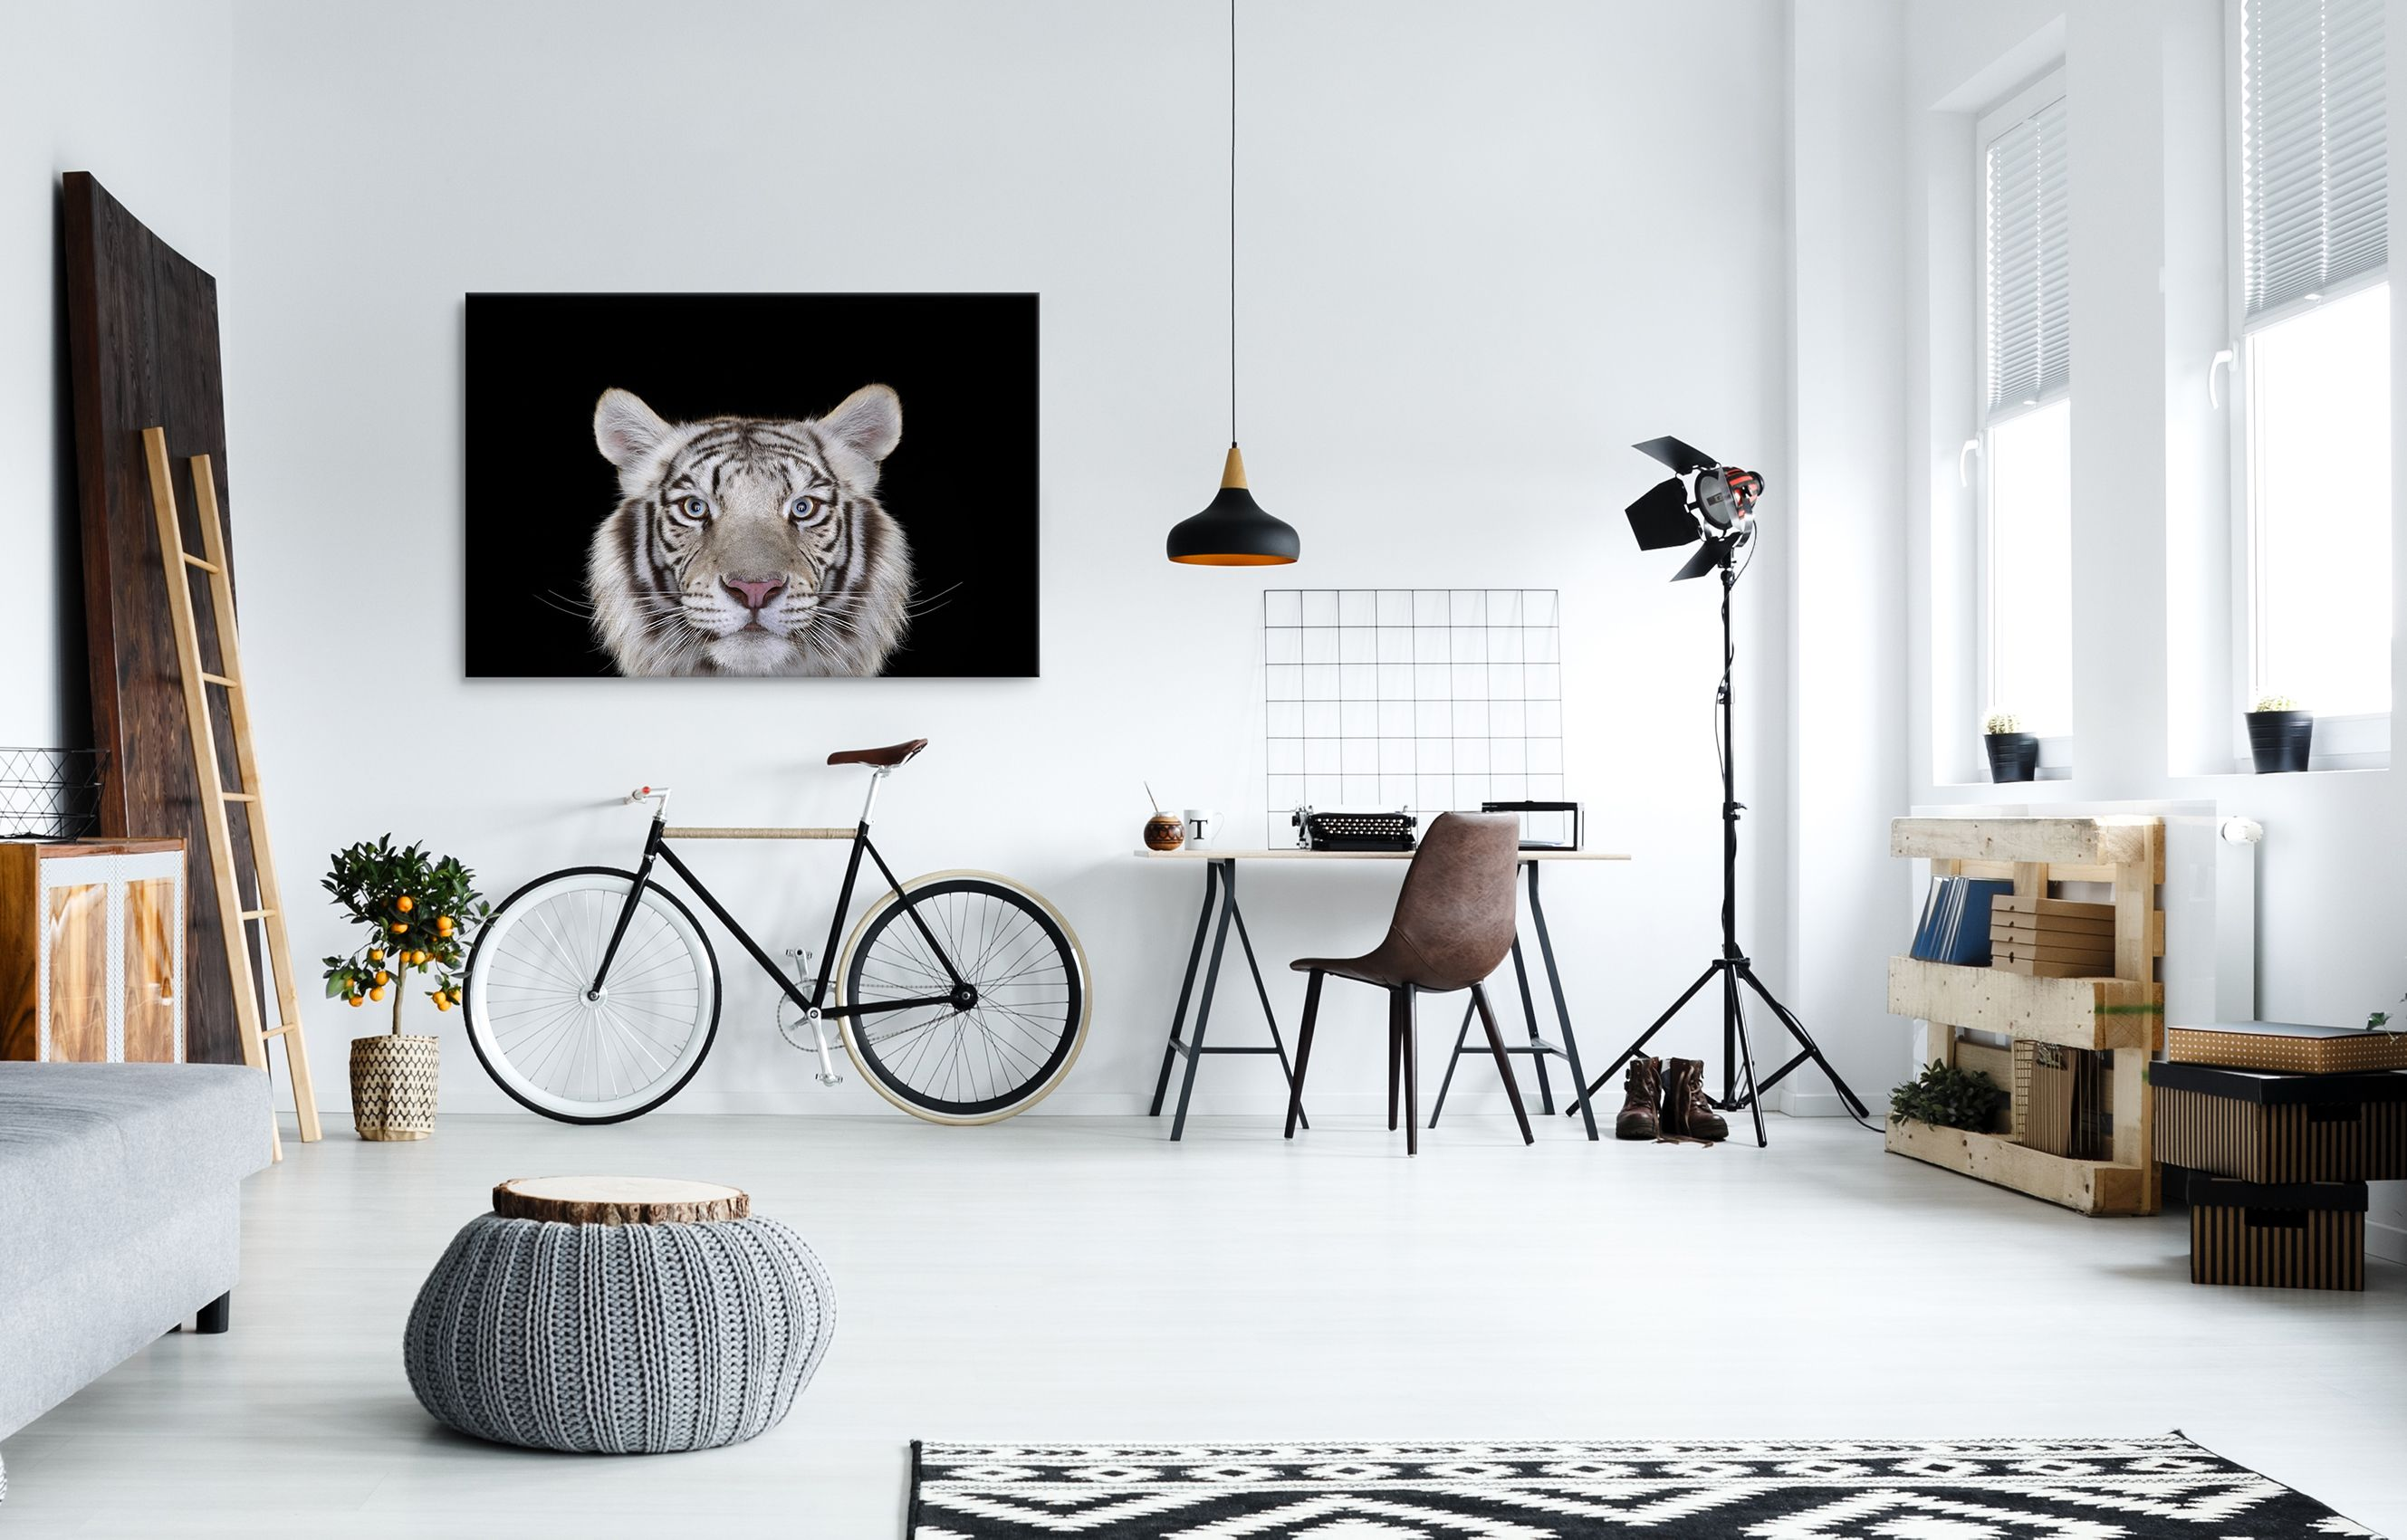 White Tiger #4, Los Angeles, CA, 2010,Brad Wilson,Photography, detail 1